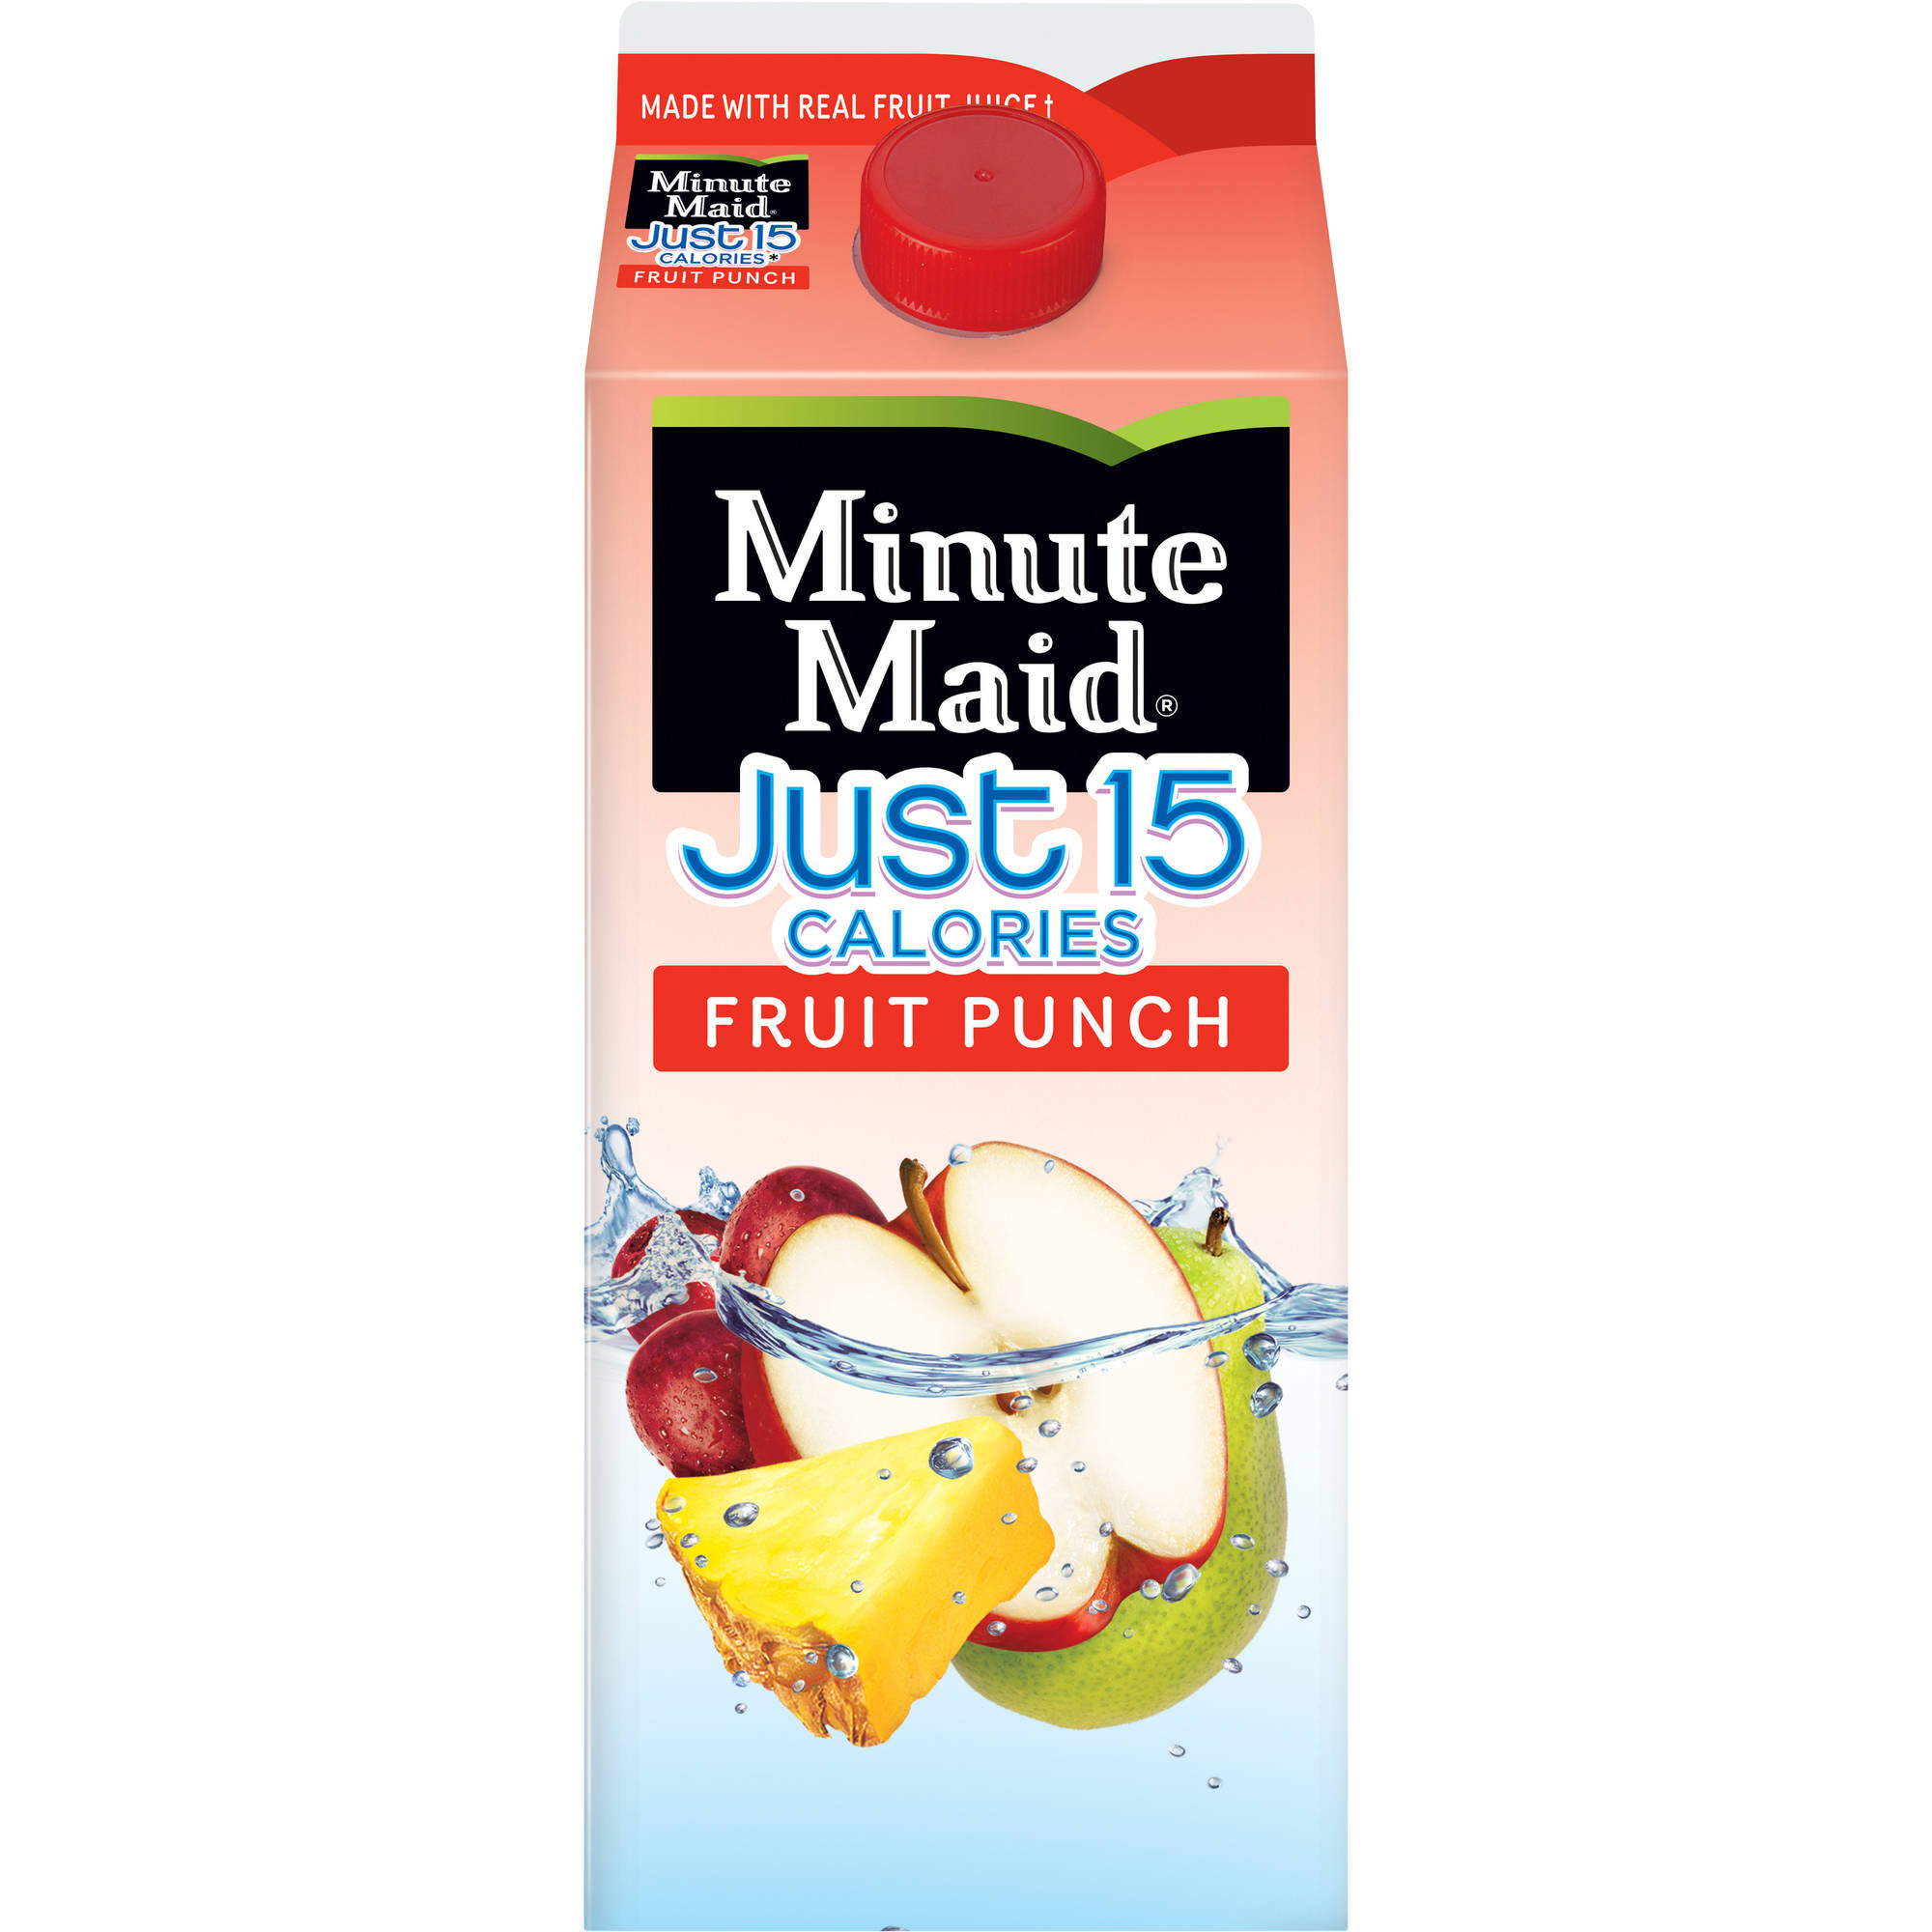 Minute Maid Just 15 Calories Fruit Punch, 59 fl oz